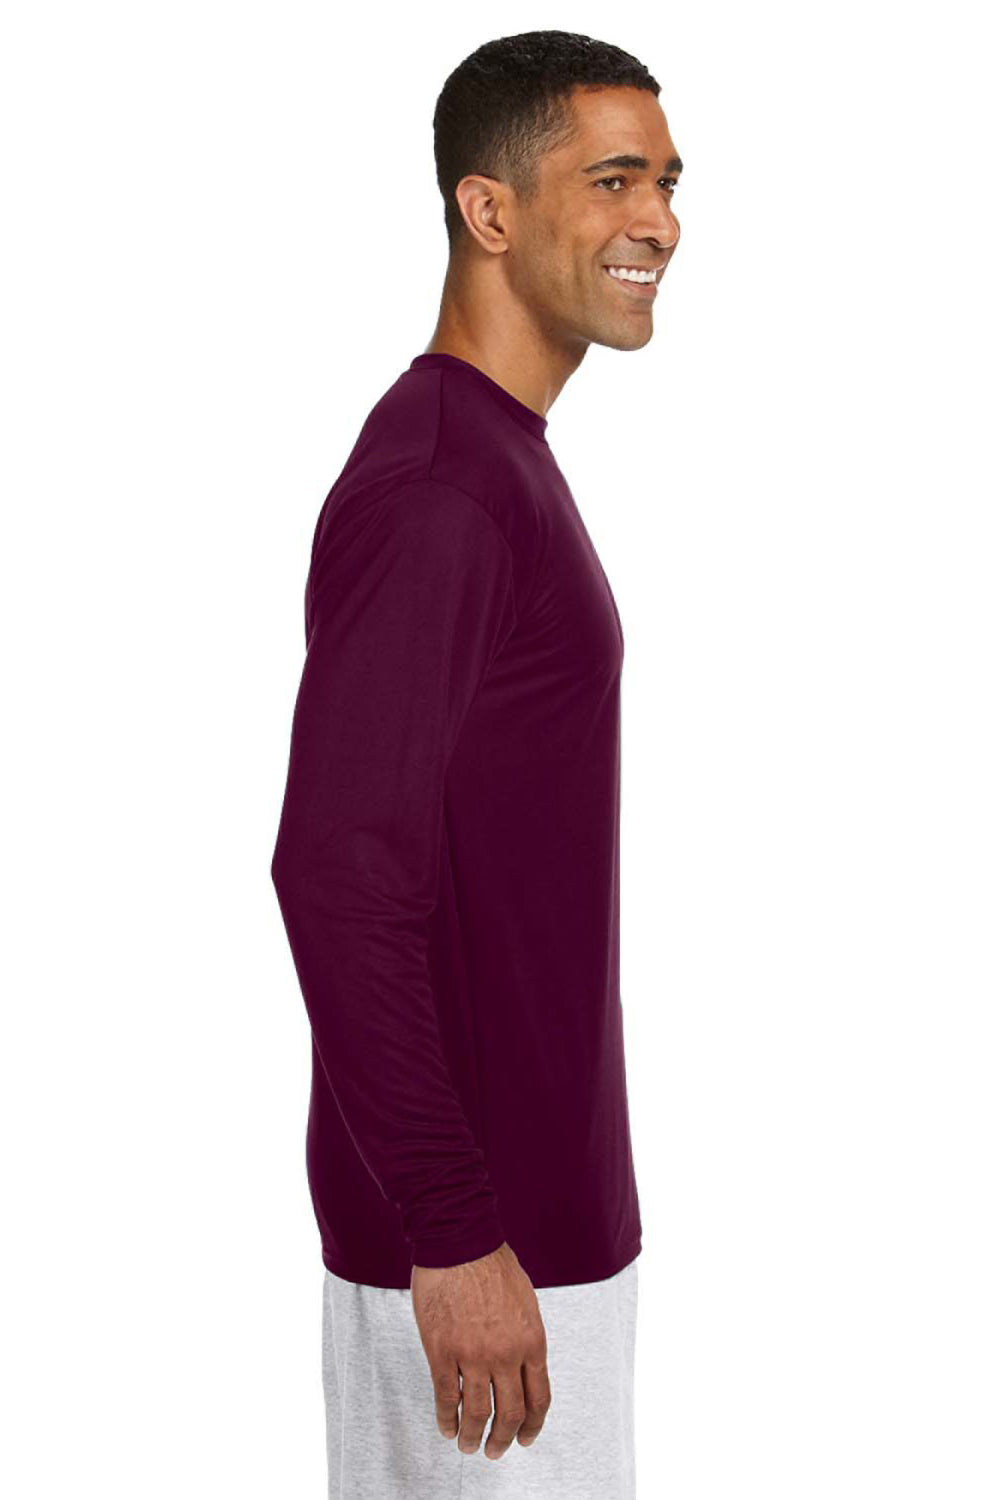 A4 N3165 Mens Cooling Performance Moisture Wicking Long Sleeve Crewneck T-Shirt Maroon Side